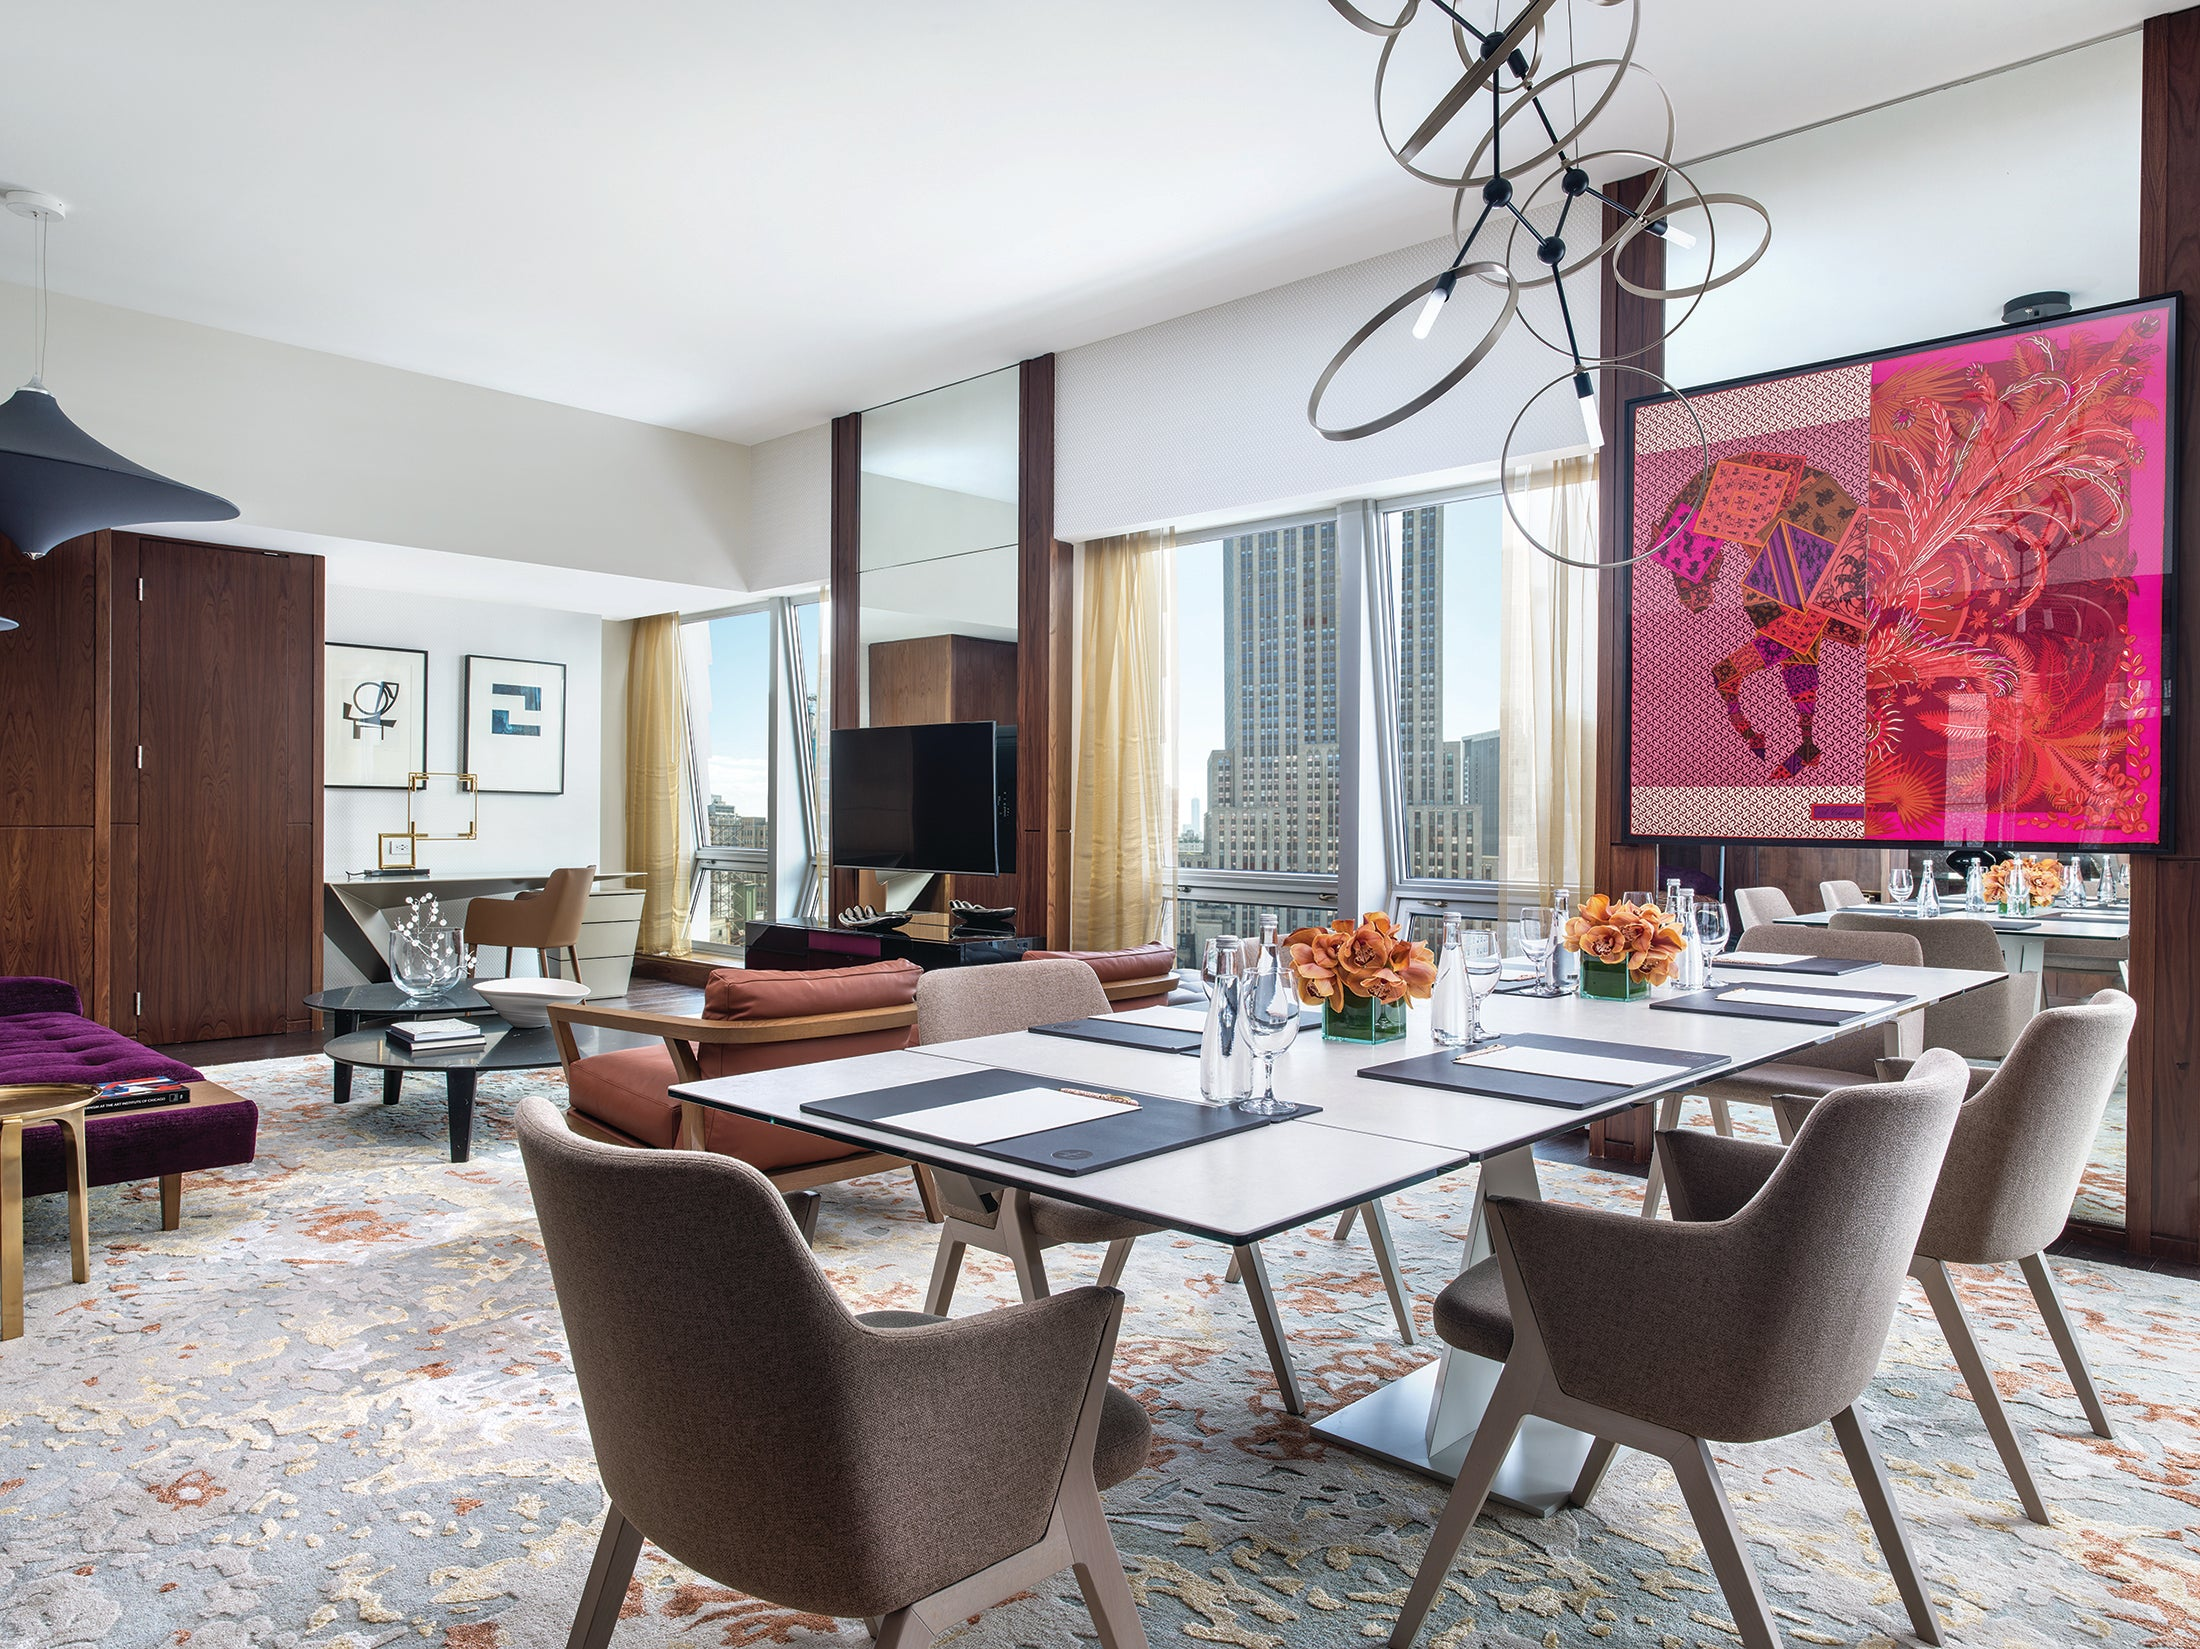 New York Luxury Hotels 10 Best Places To Stay For Location And